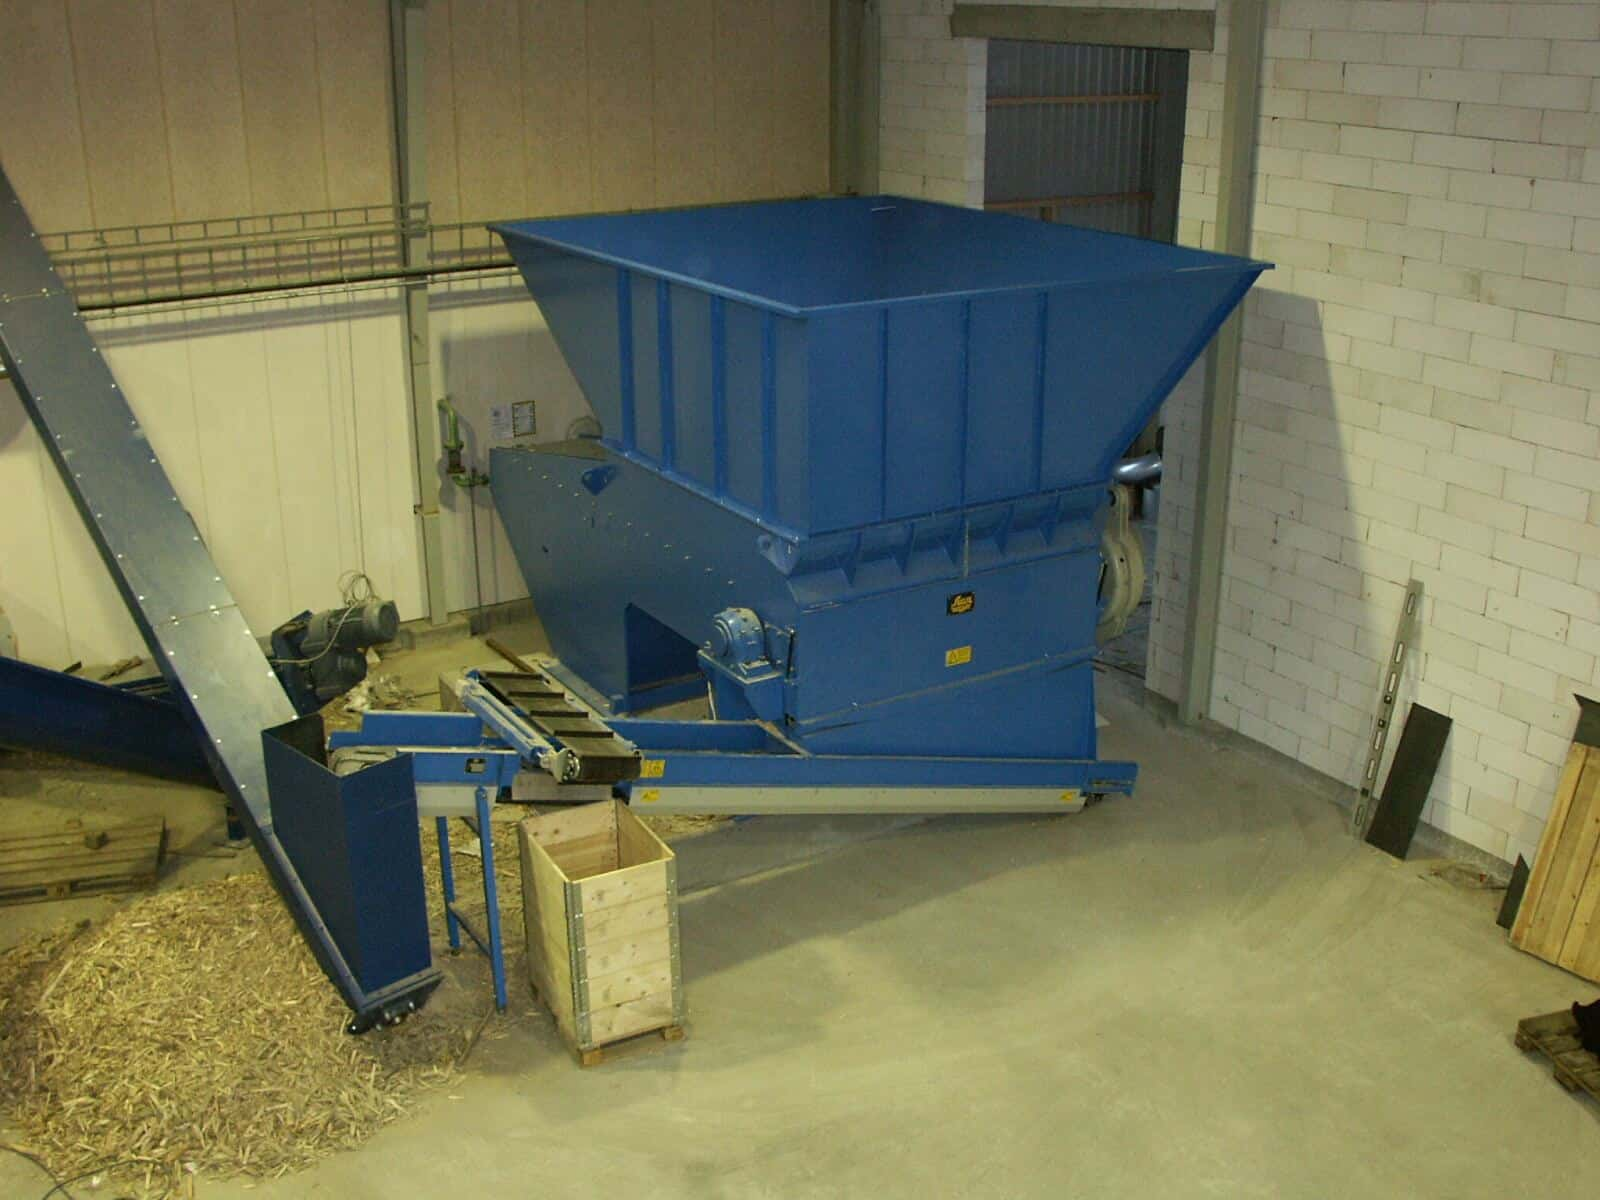 Scanhugger HL 2/22/30 at production facility with band conveyor, oveband magnet at auger conveyor with small silo